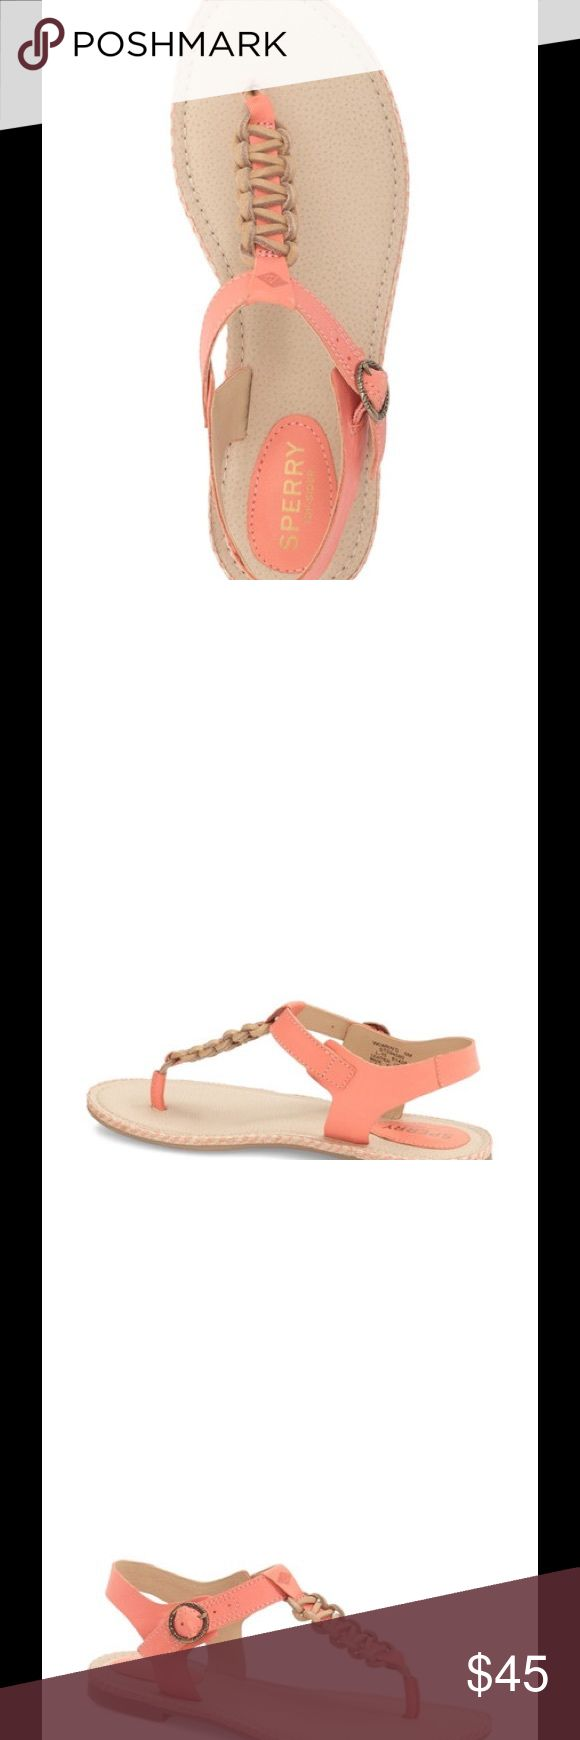 REDUCED! Coral Sperry Anchor Sandals SALE!🎉🎊🎉 Cute Coral Comfort Sperry Shoes Sandals